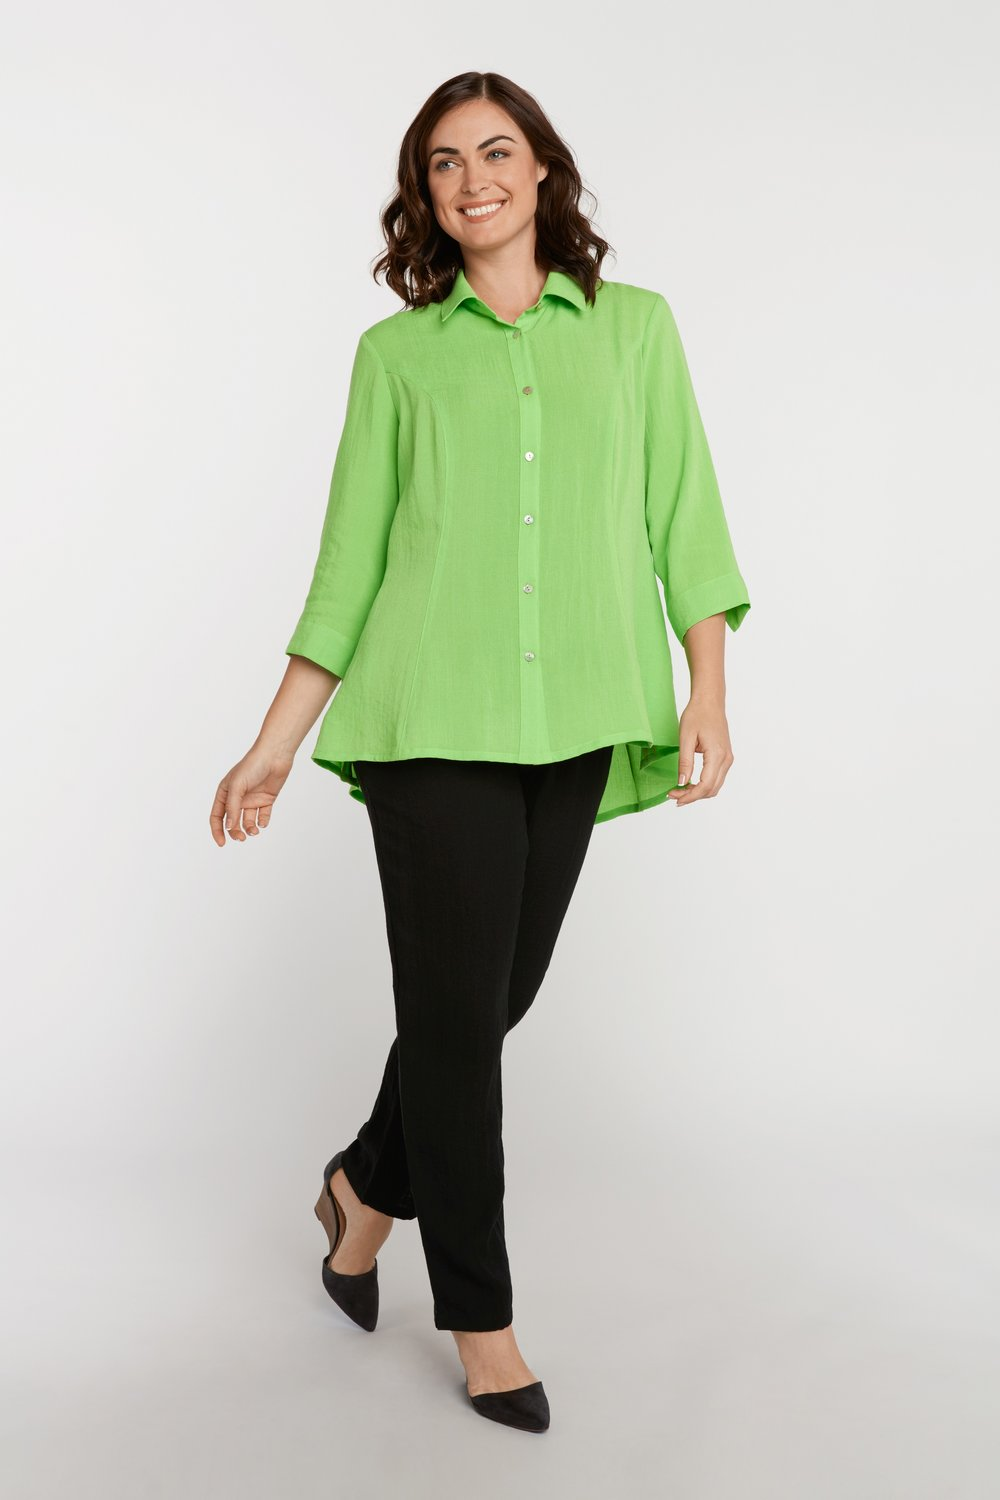 AA224 - Veronica Button-Up Blouse    Bali - CL2566